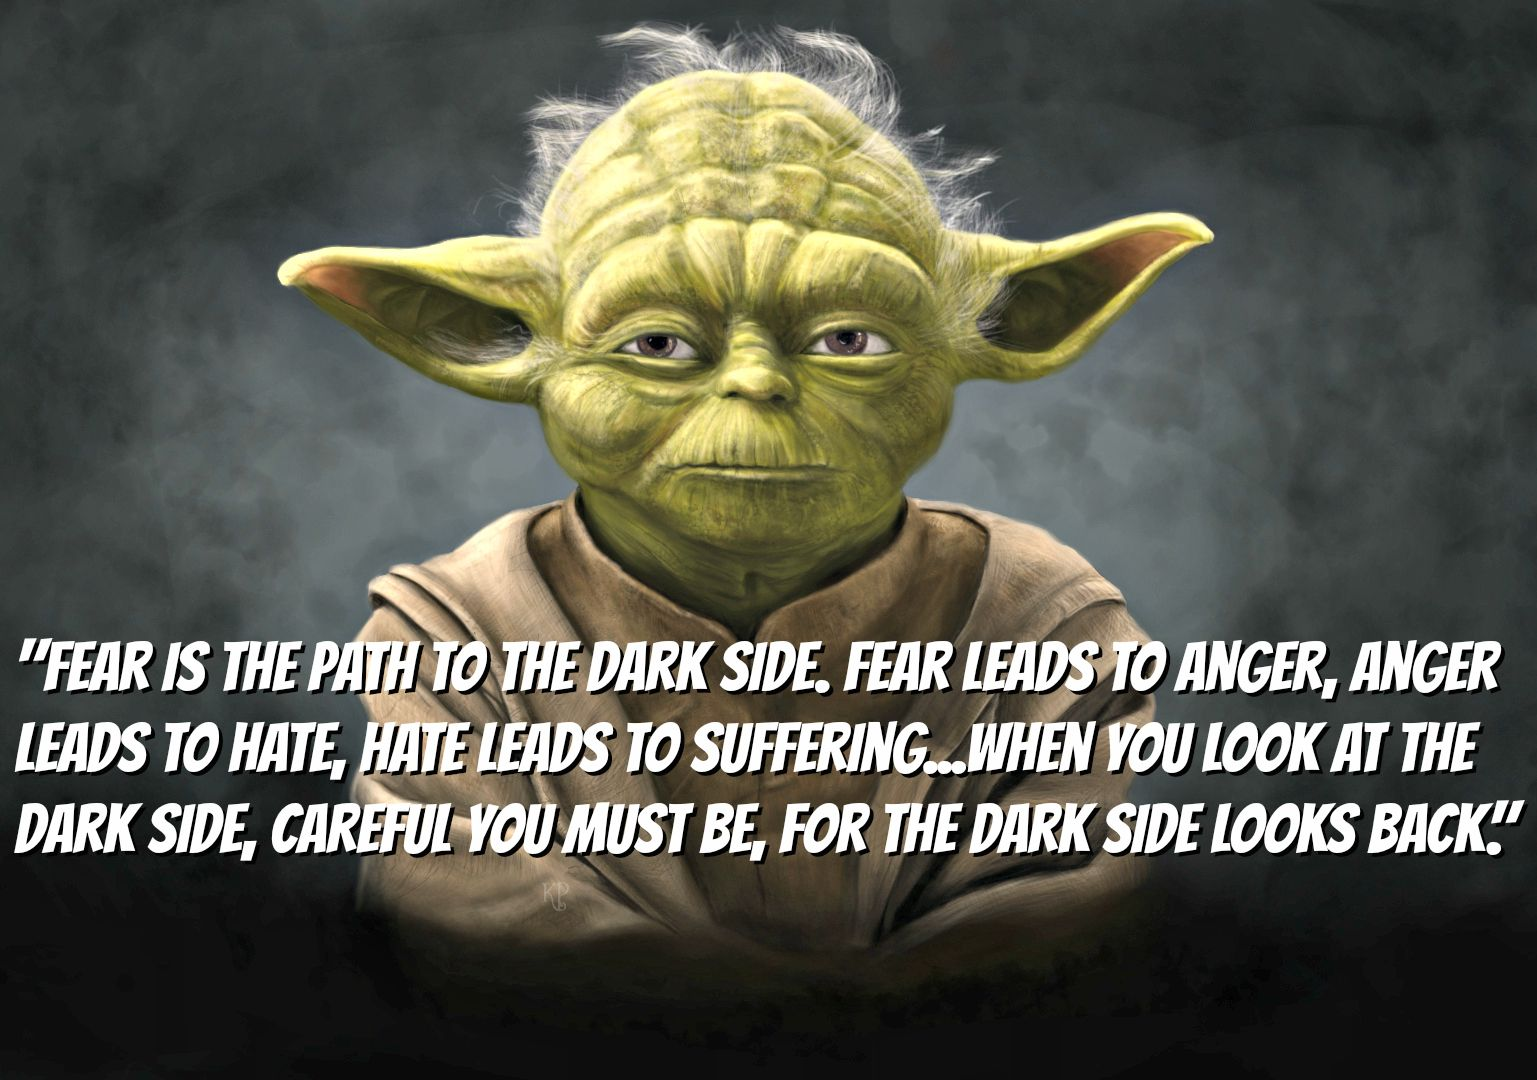 """""""When you look at the dark side, careful you must be, for the dark side looks back."""" ~ Yoda"""